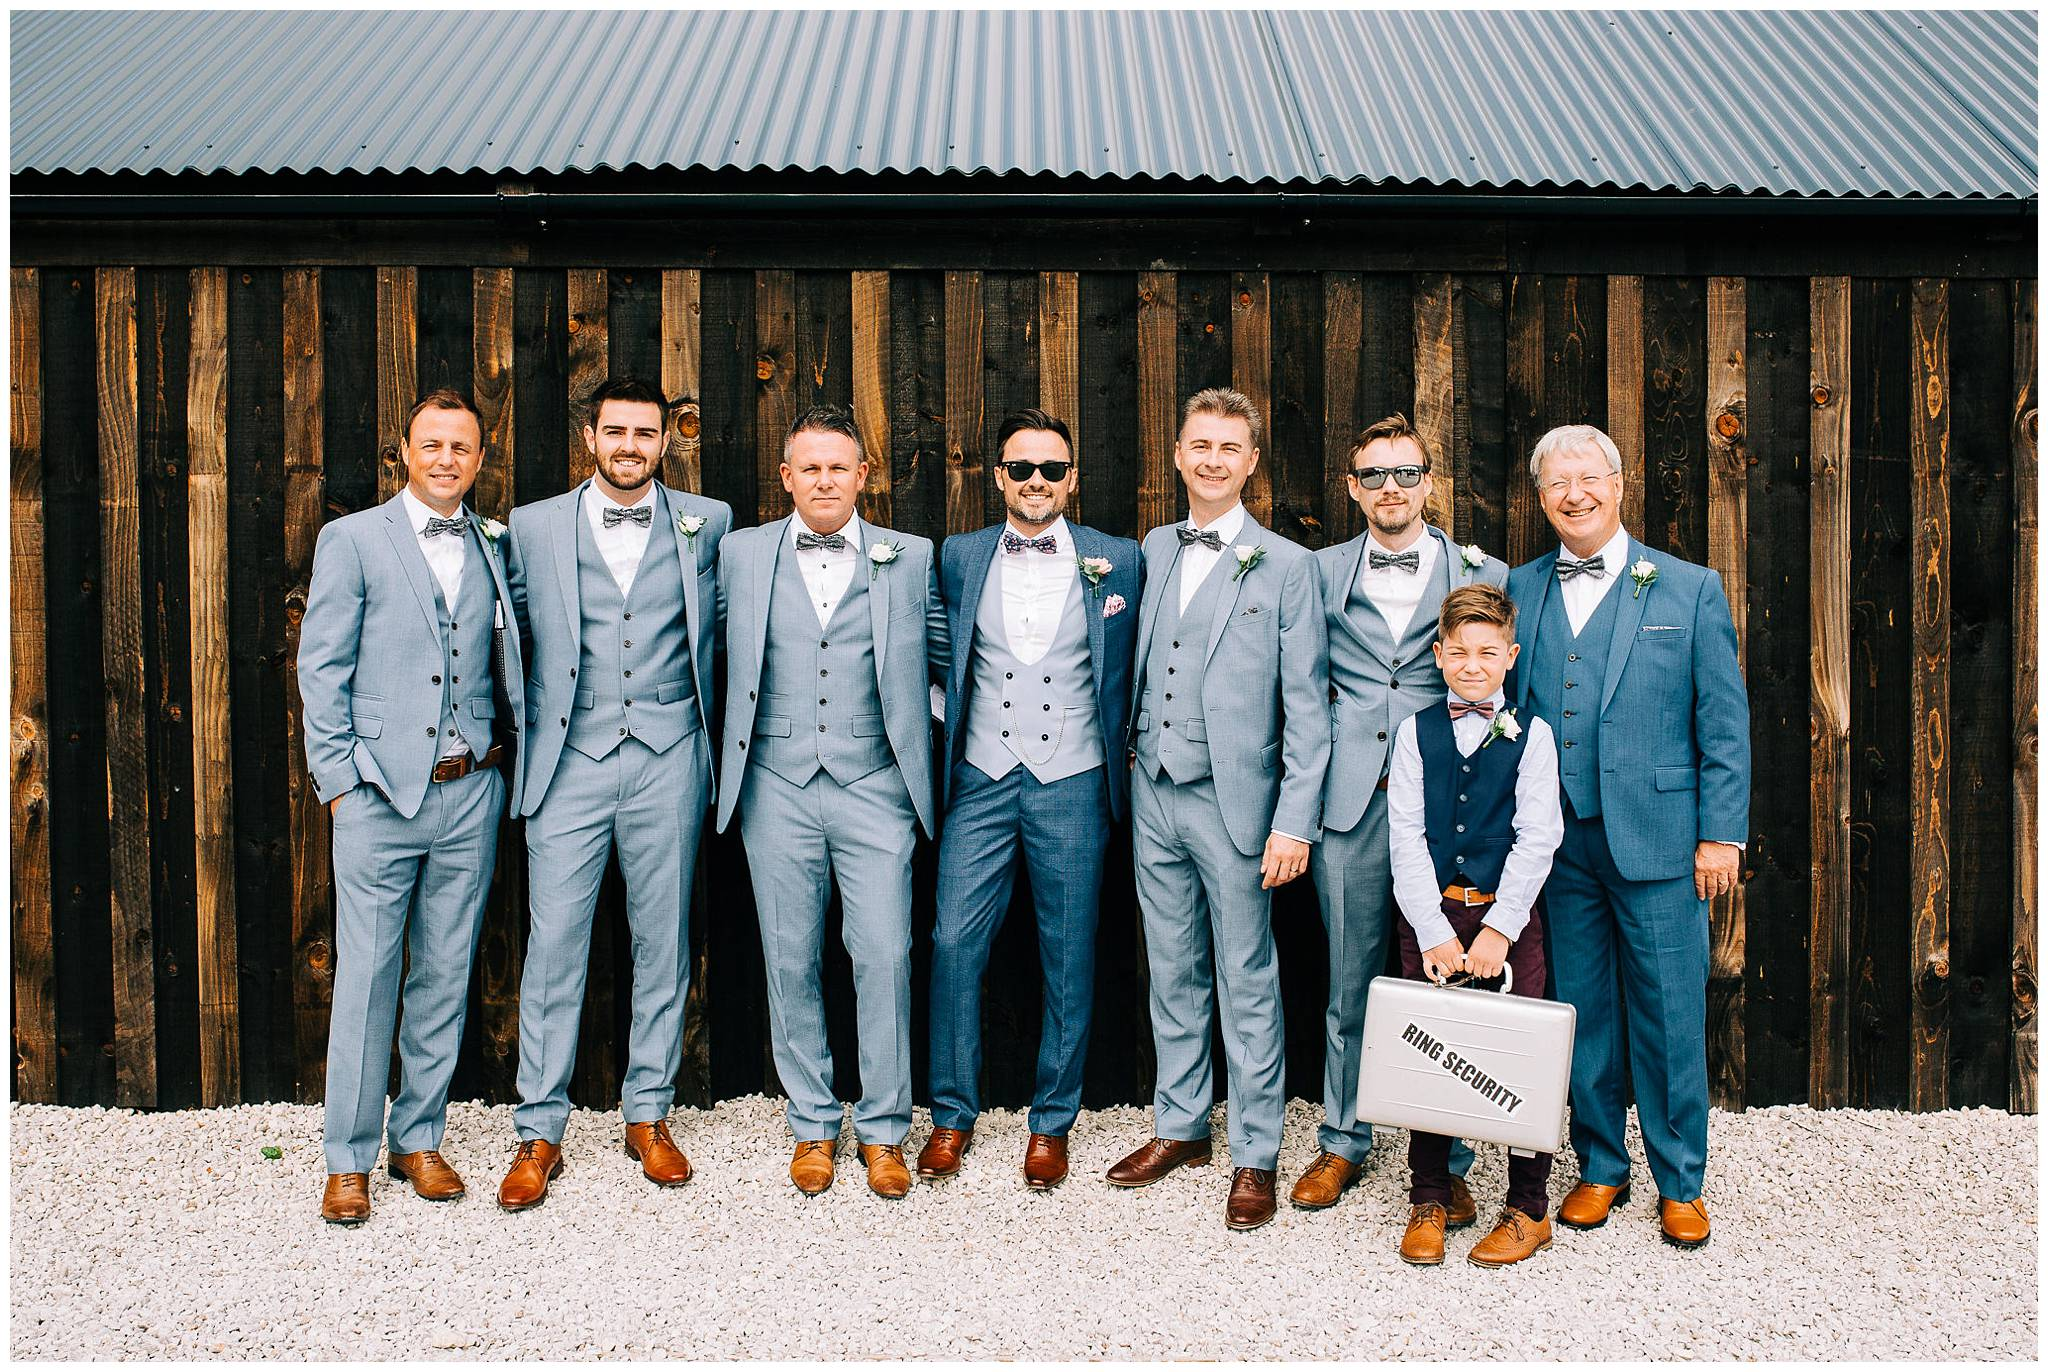 Chic Summer Wedding at Hazel Gap Barn - Nottinghamshire Photographer14.jpg